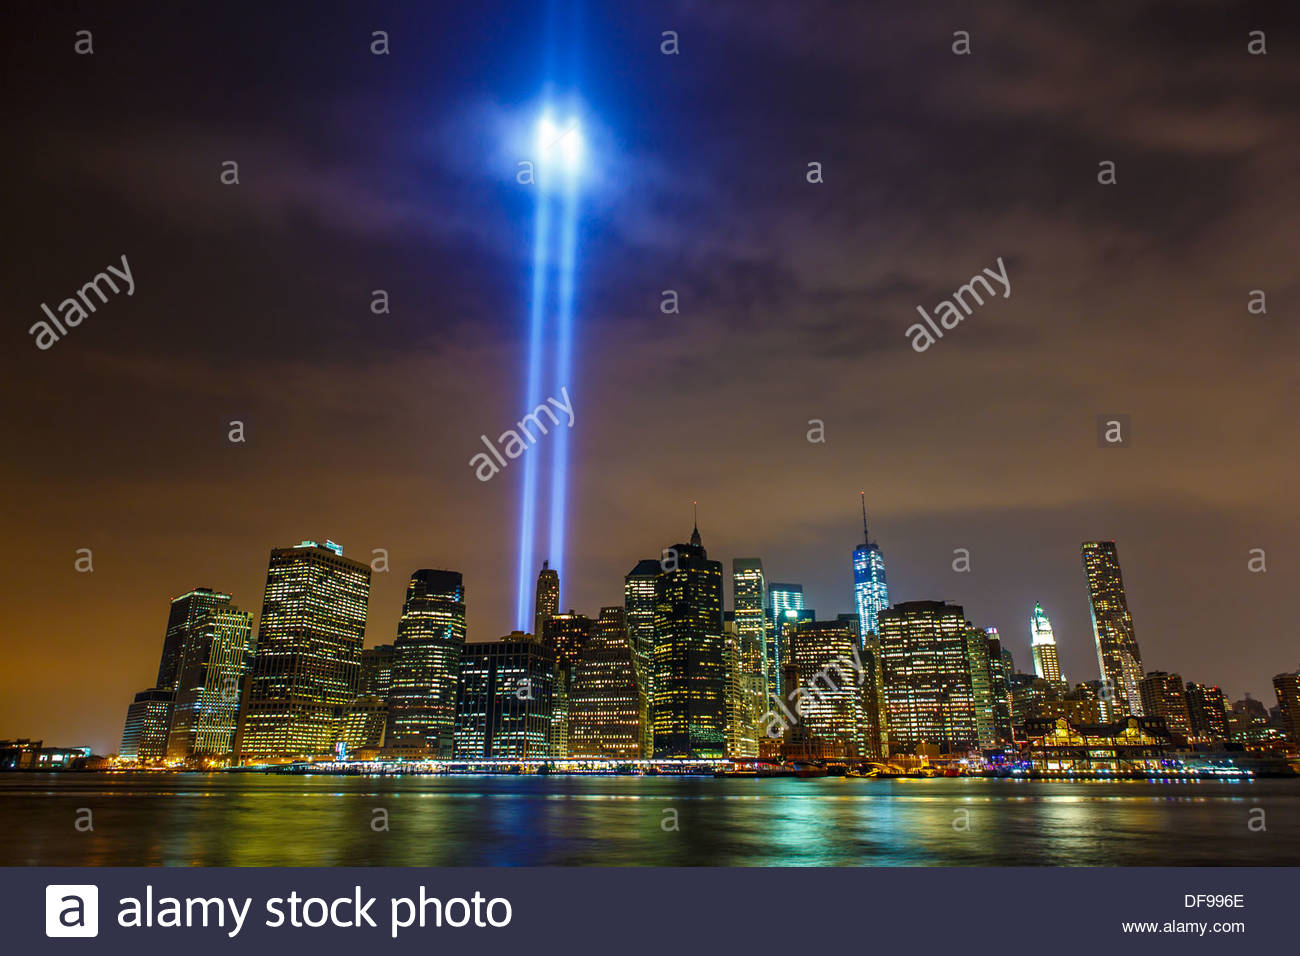 Tribute in light symbol of world trade center towers in the new tribute in light symbol of world trade center towers in the new york skyline as seen on 12th anniversary of september 11 biocorpaavc